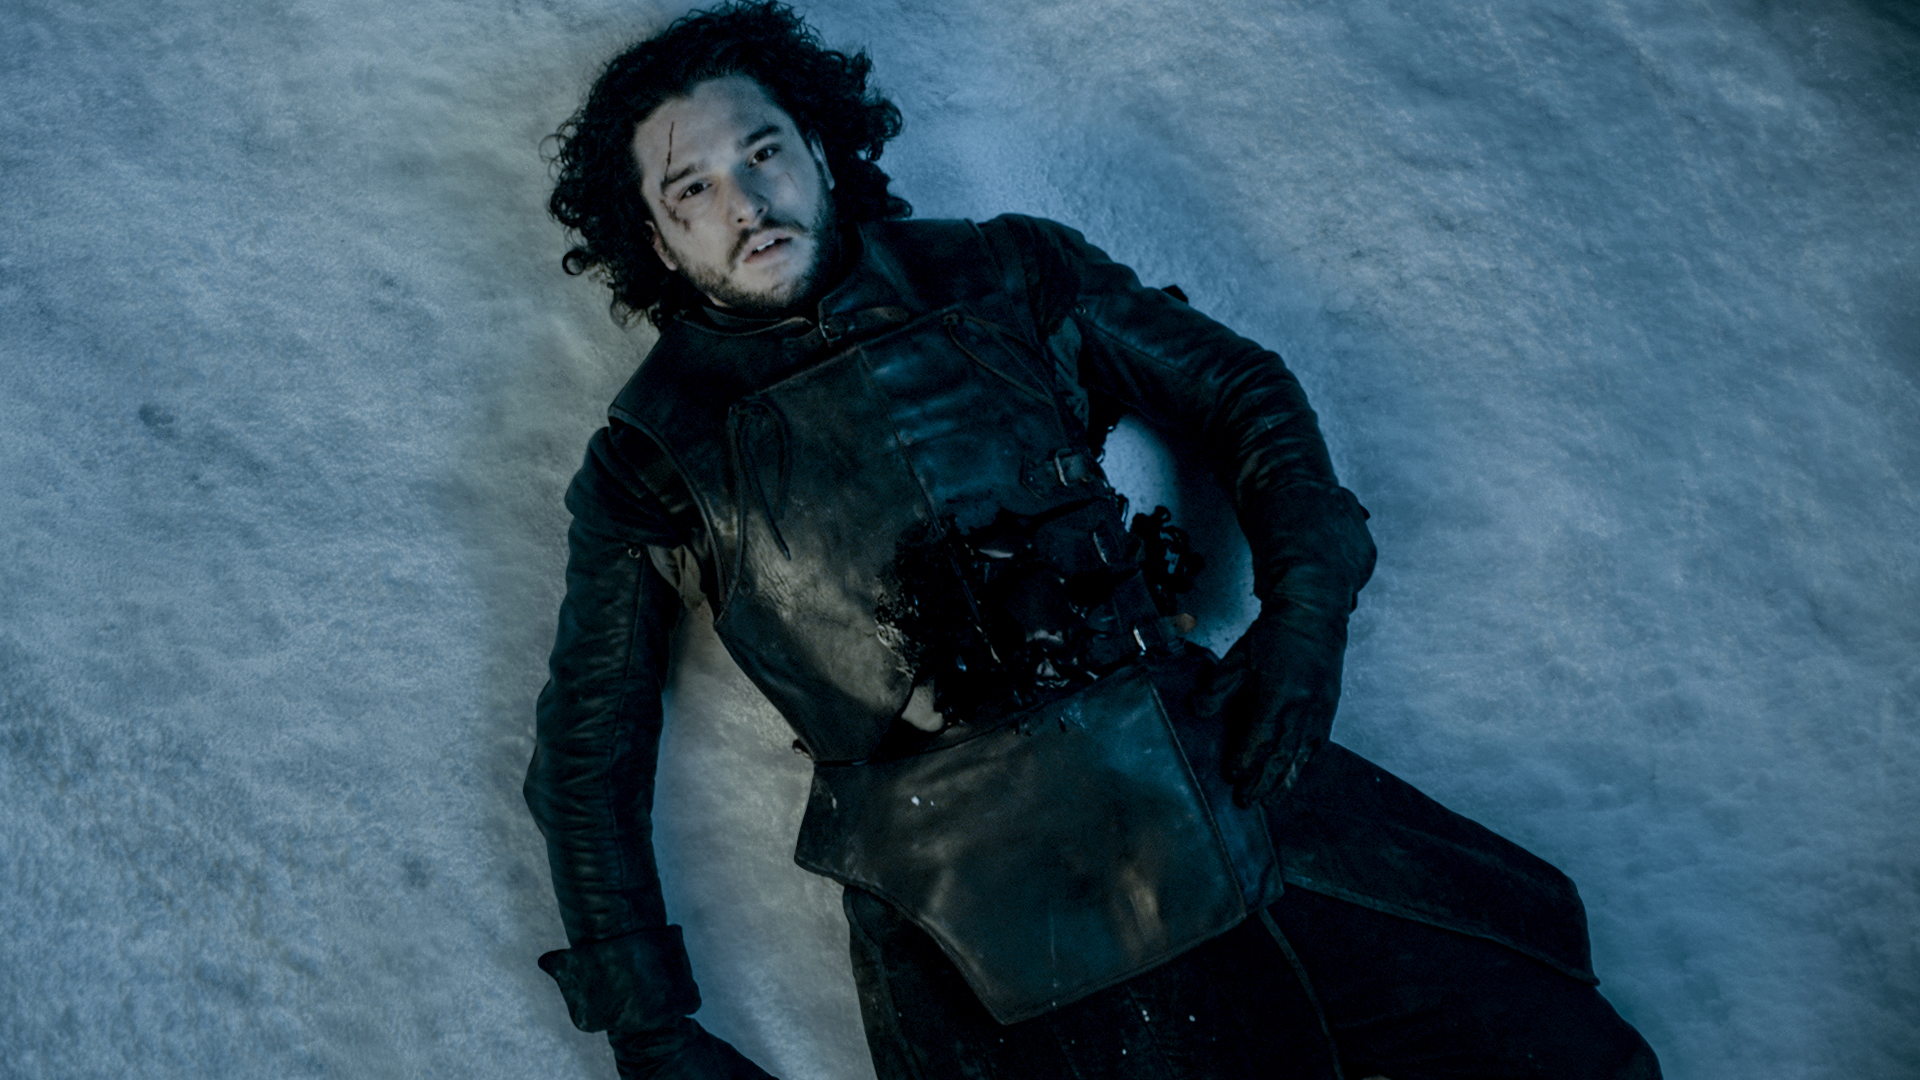 Jon Snow facts